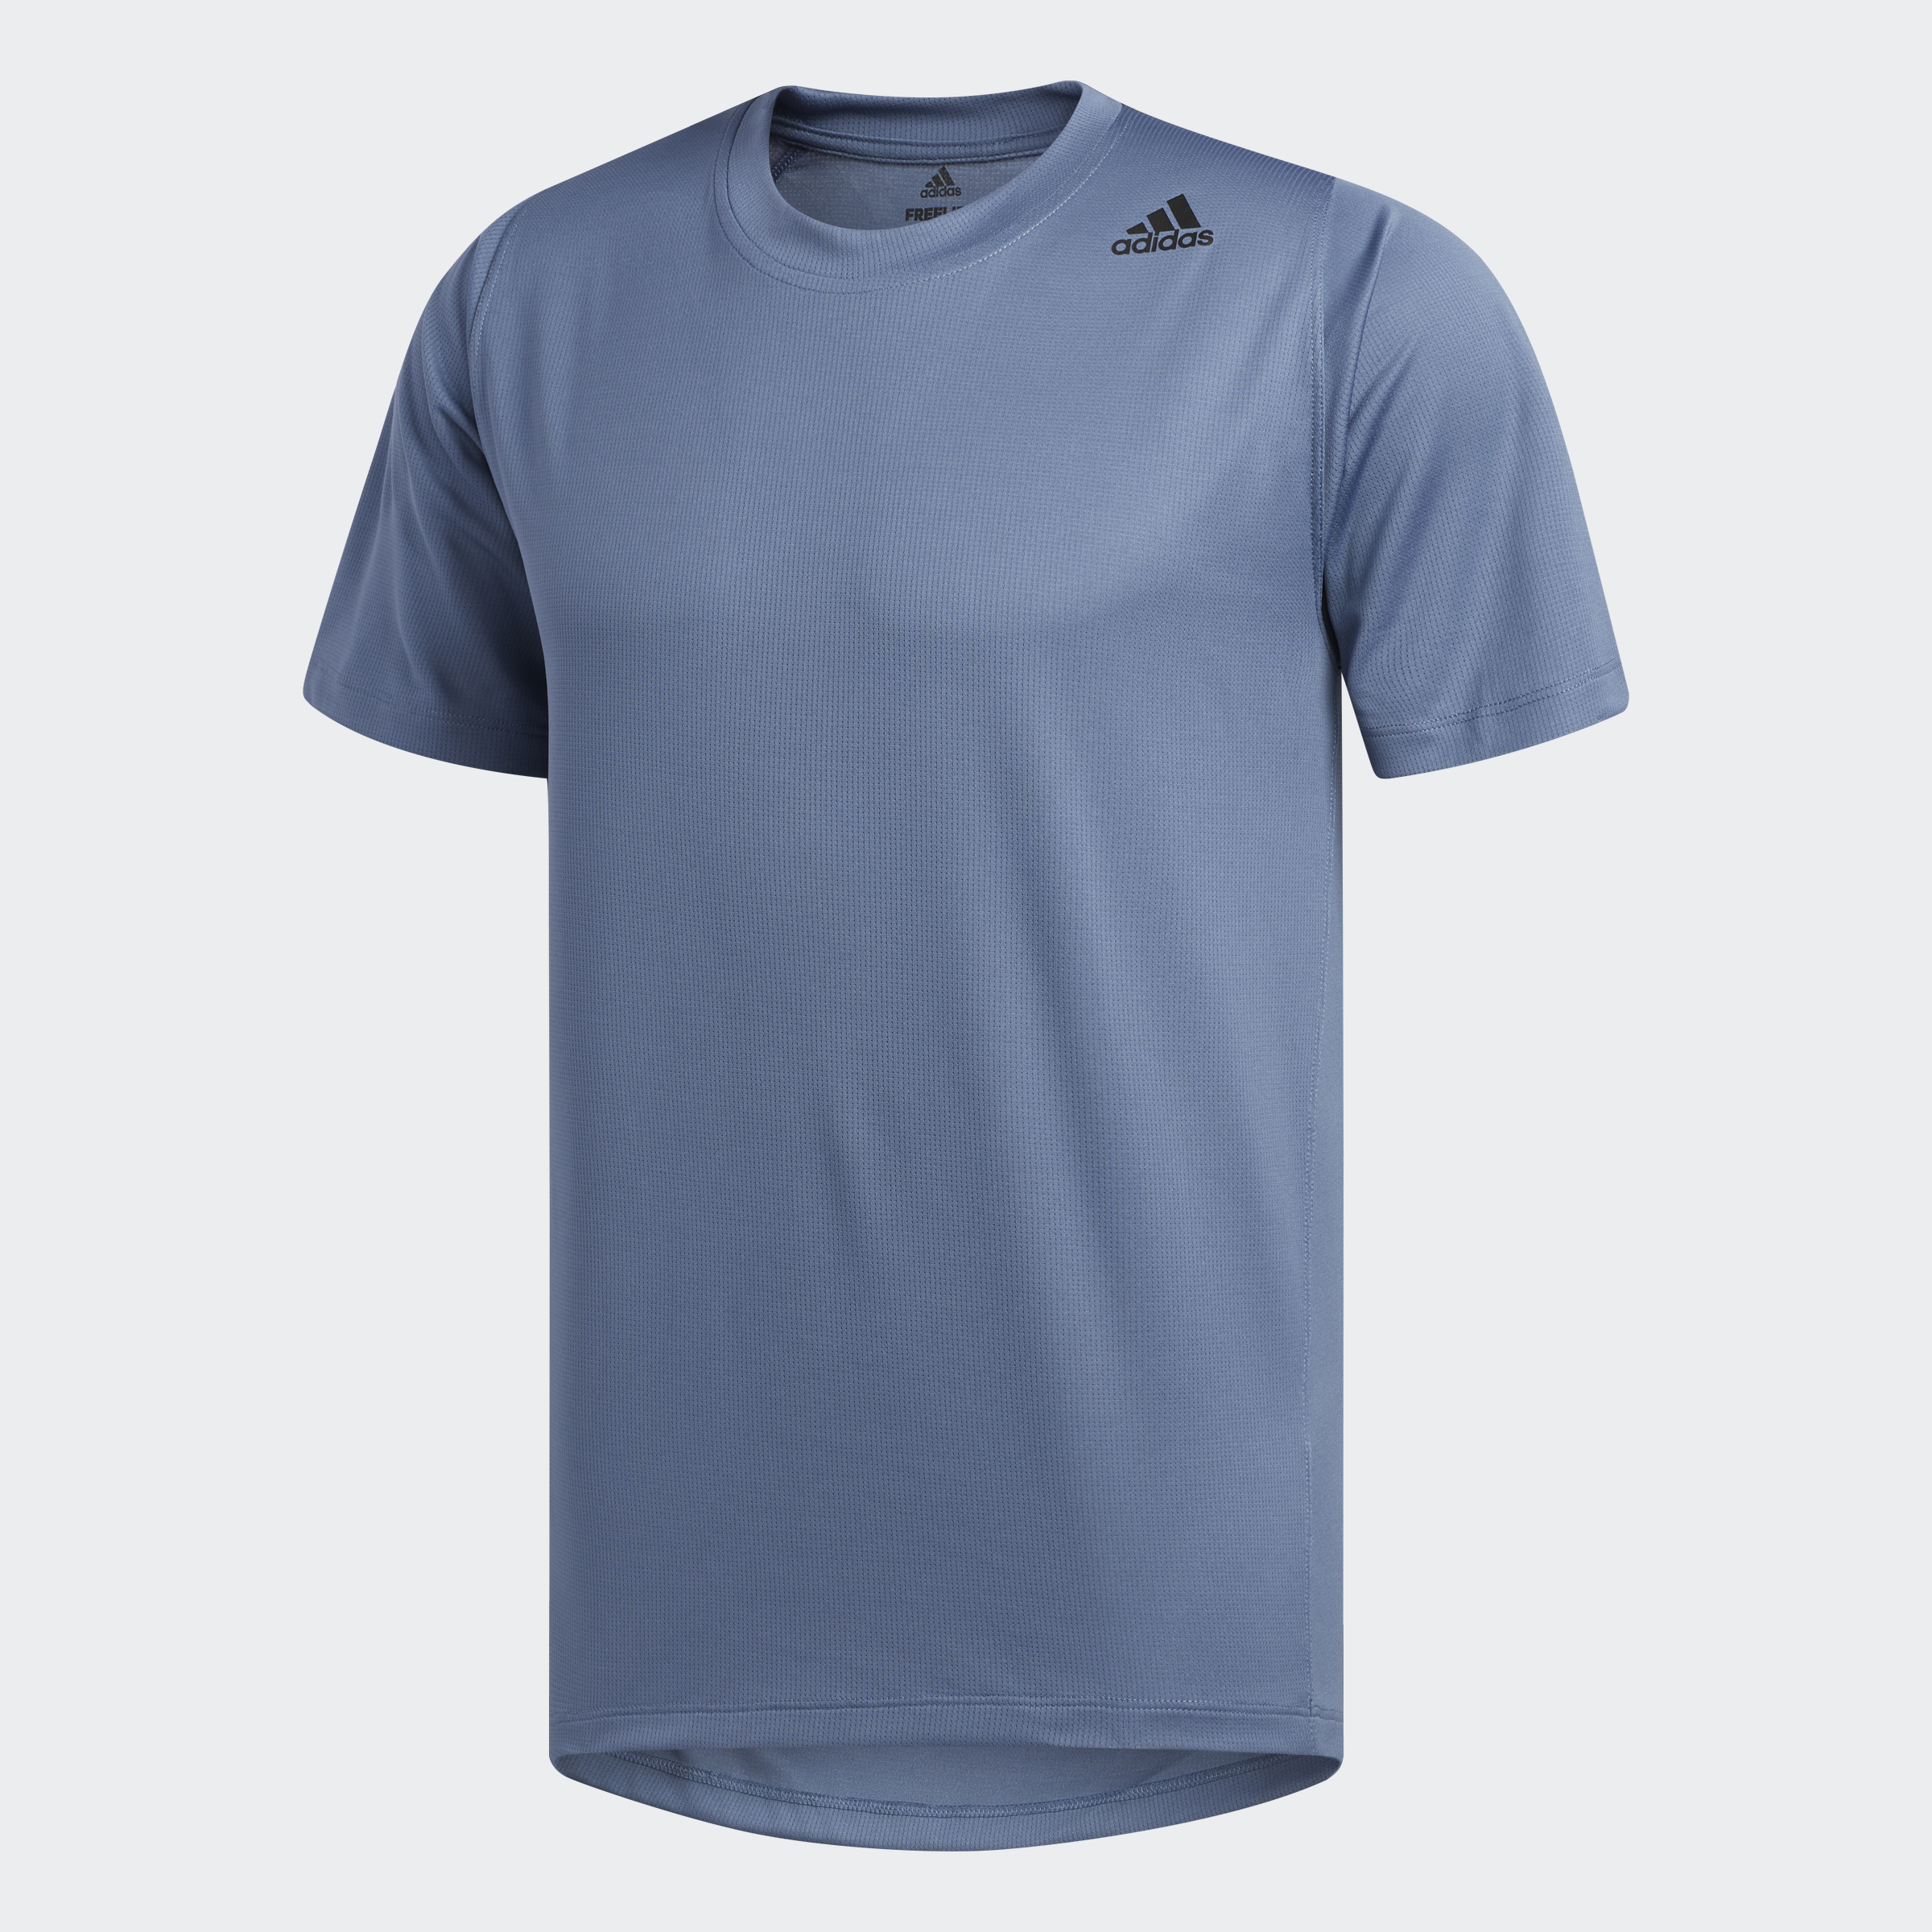 adidas-FreeLift-Sport-Fitted-3-Stripes-Tee-Men-039-s-Shirts thumbnail 40